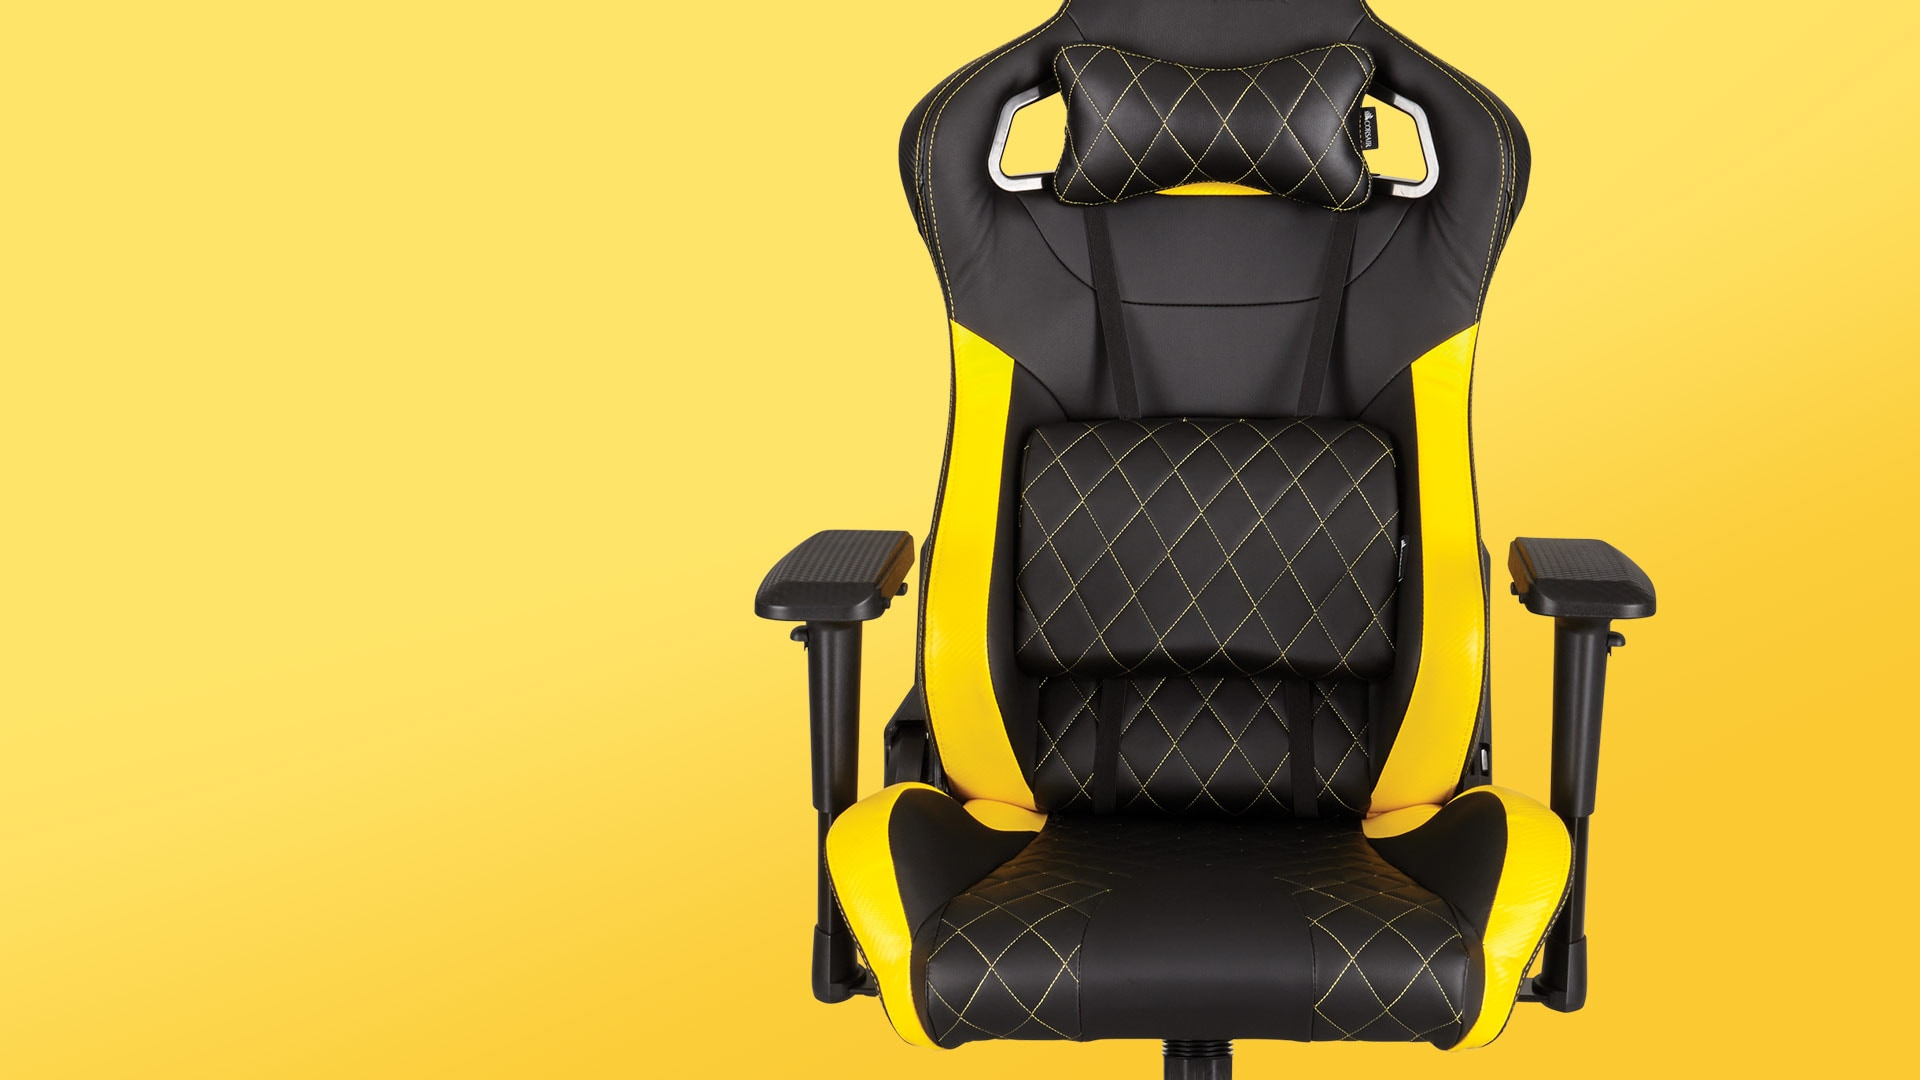 heavy duty gaming chair mickey mouse high banner t1 race: inspired by racing built to game